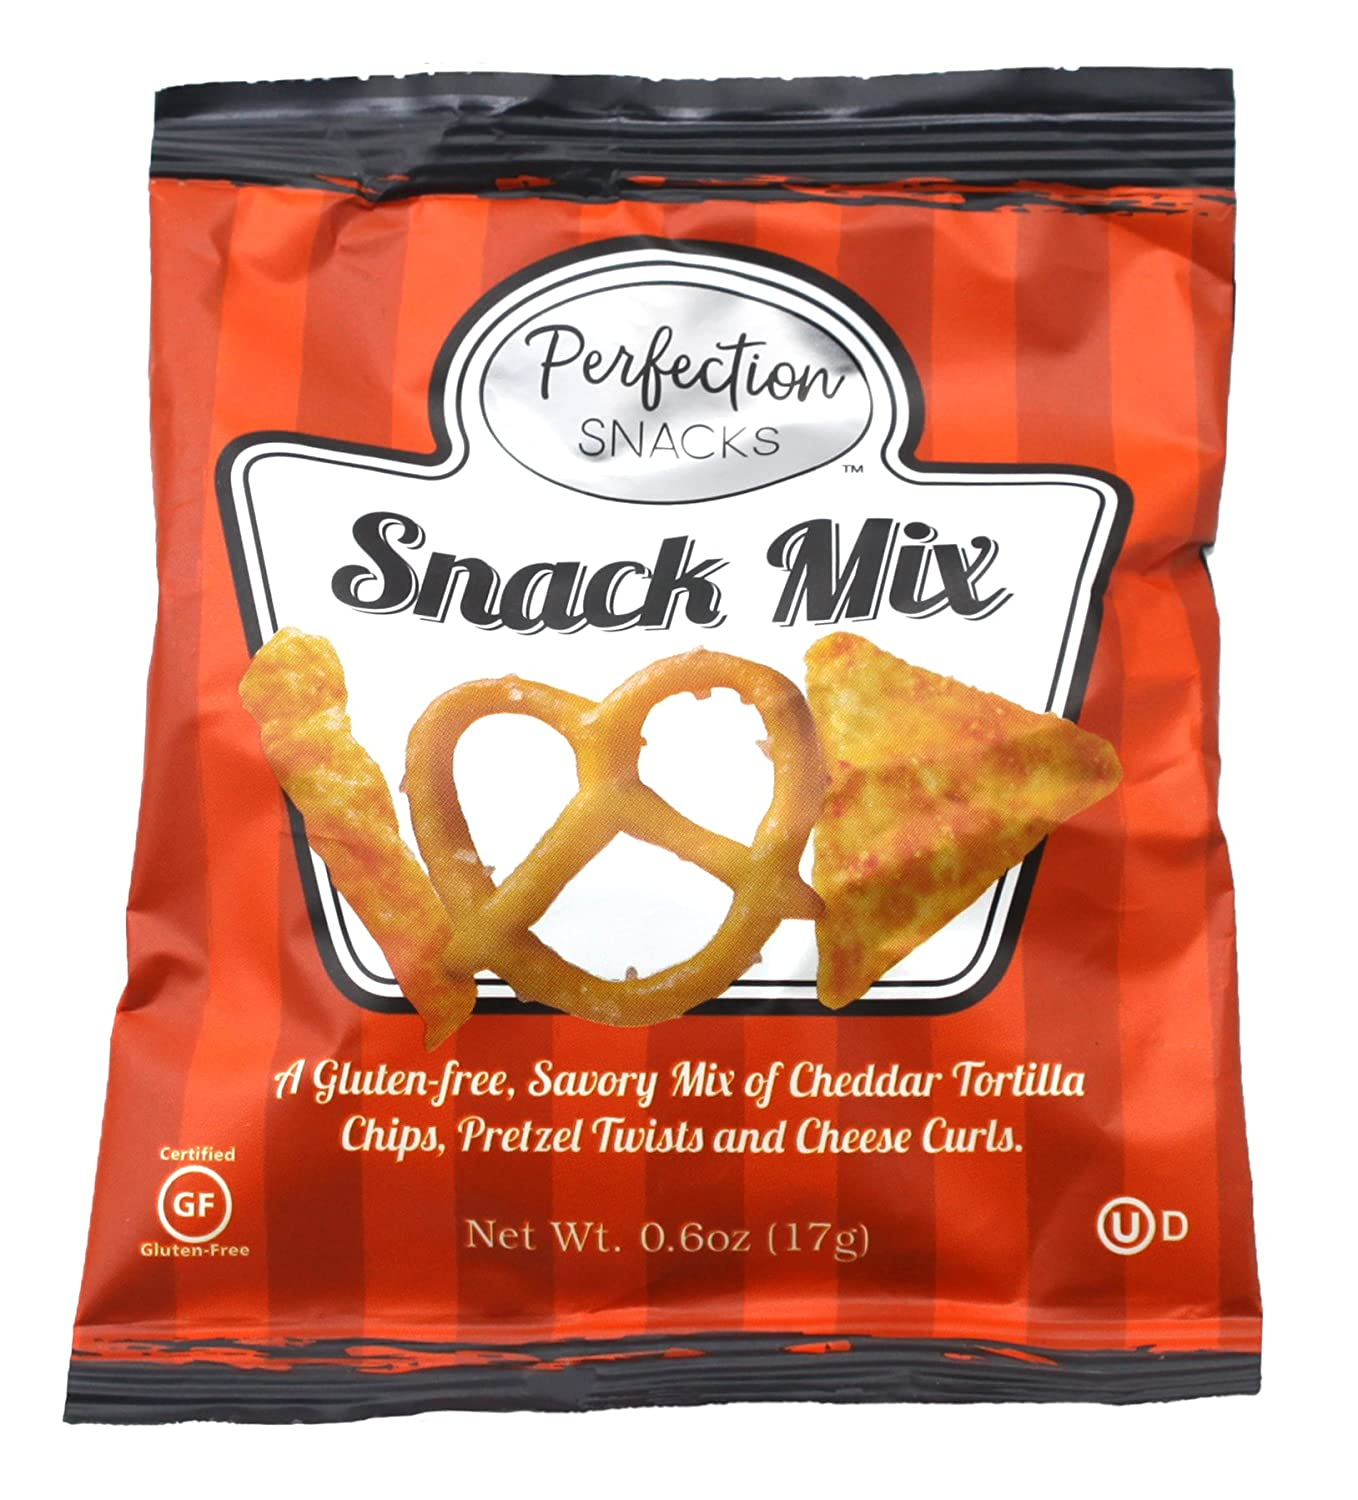 Perfection Snacks Original Snack Mix